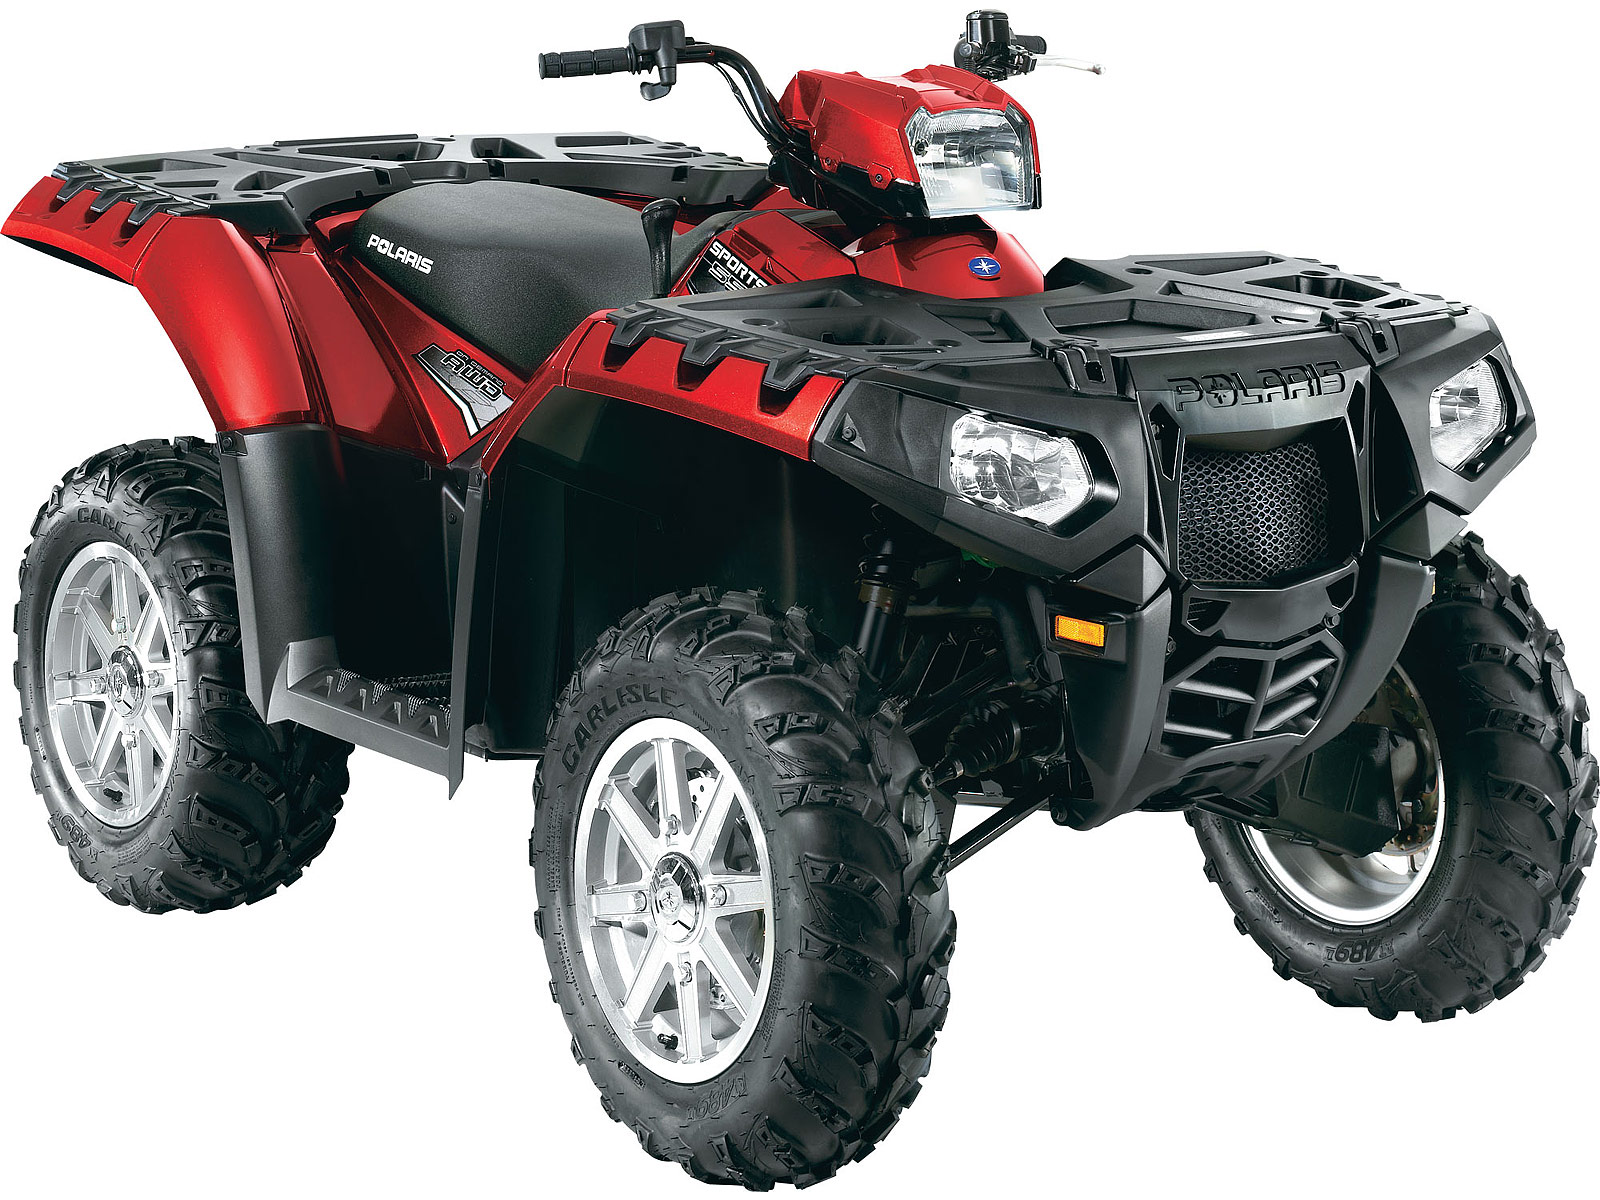 2012 polaris sportsman 550 eps atv pictures insurance. Black Bedroom Furniture Sets. Home Design Ideas